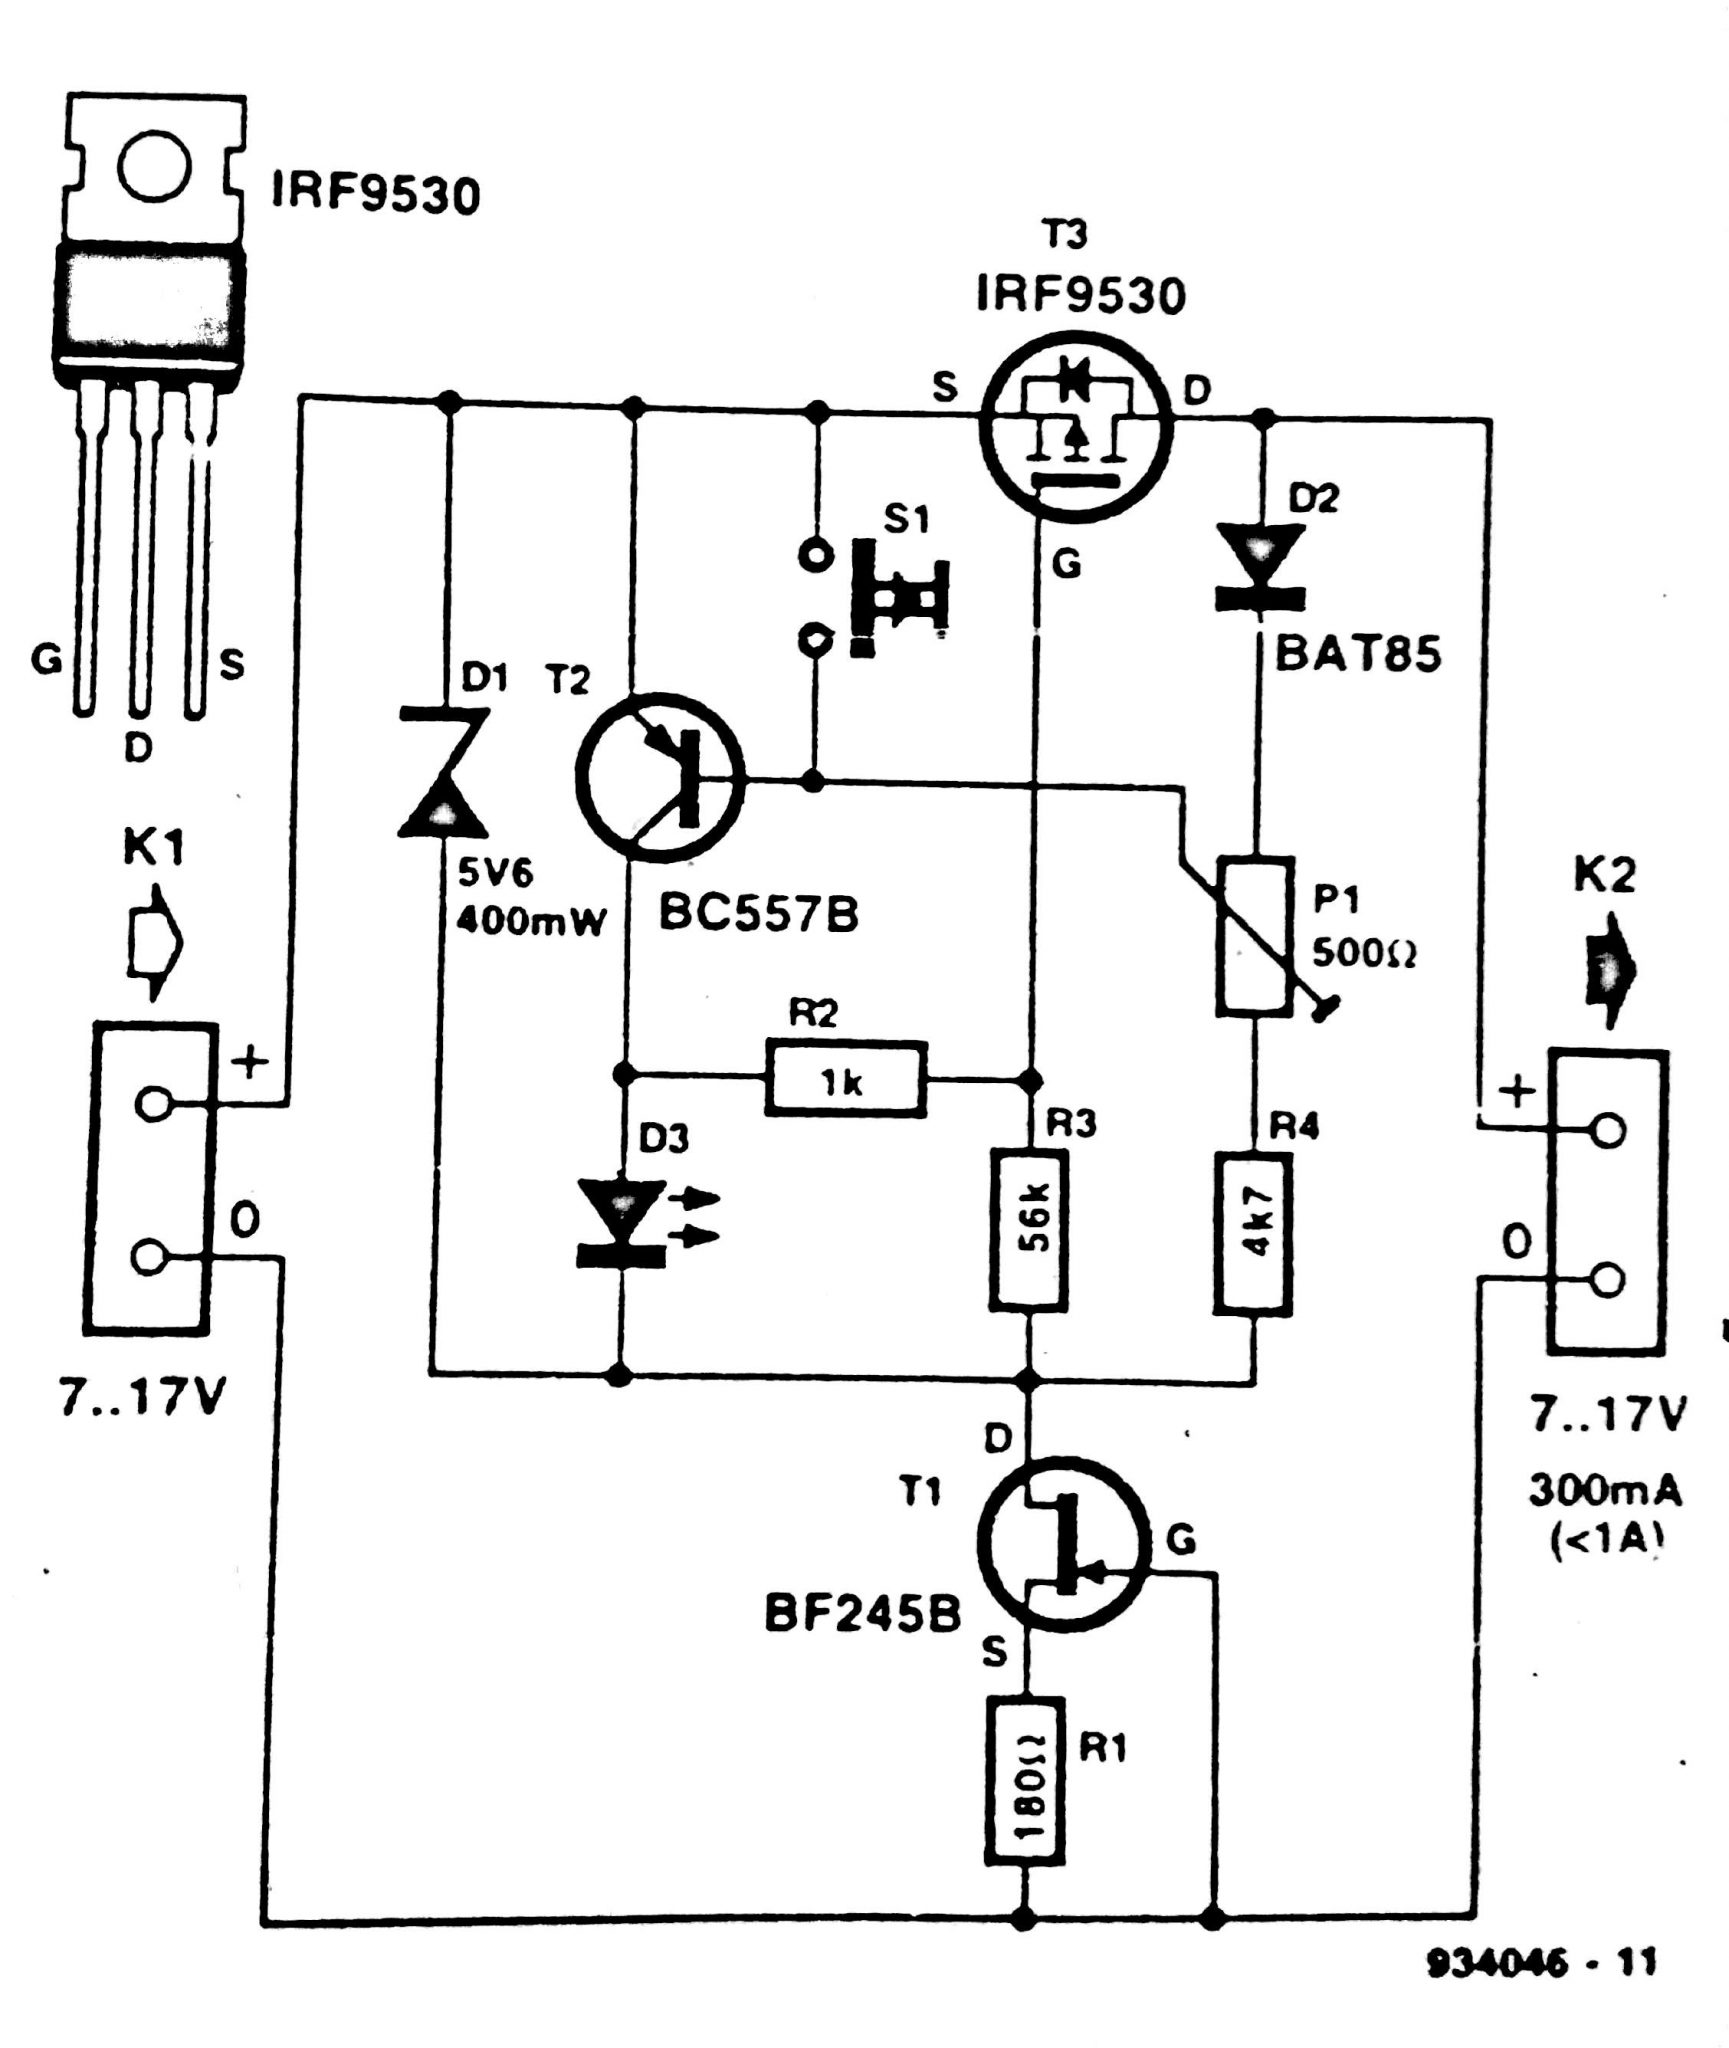 hight resolution of t1 circuit diagram